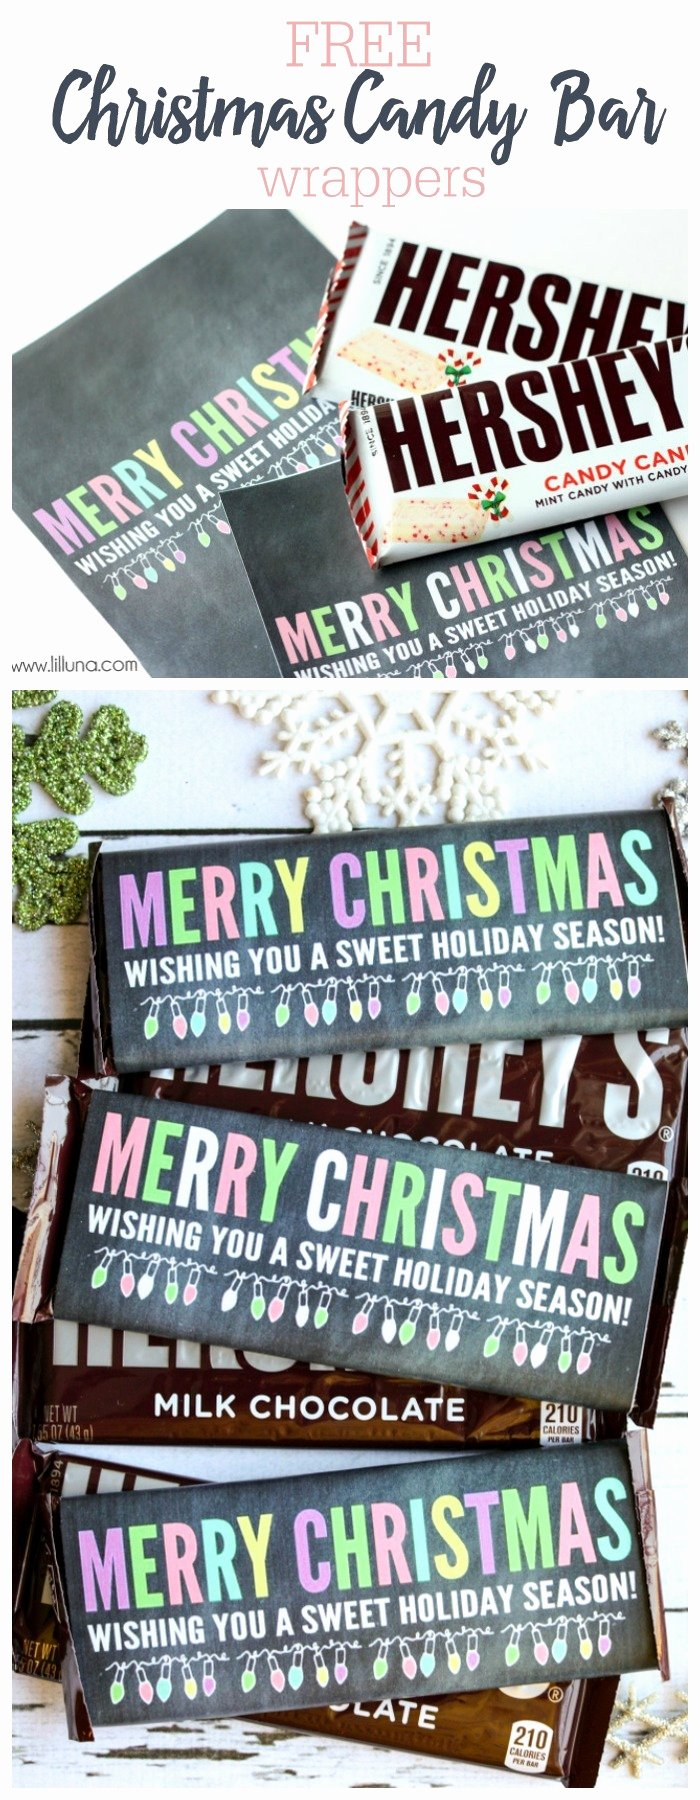 Free Candy Bar Wrappers Awesome Merry Christmas Candy Bar Wrappers